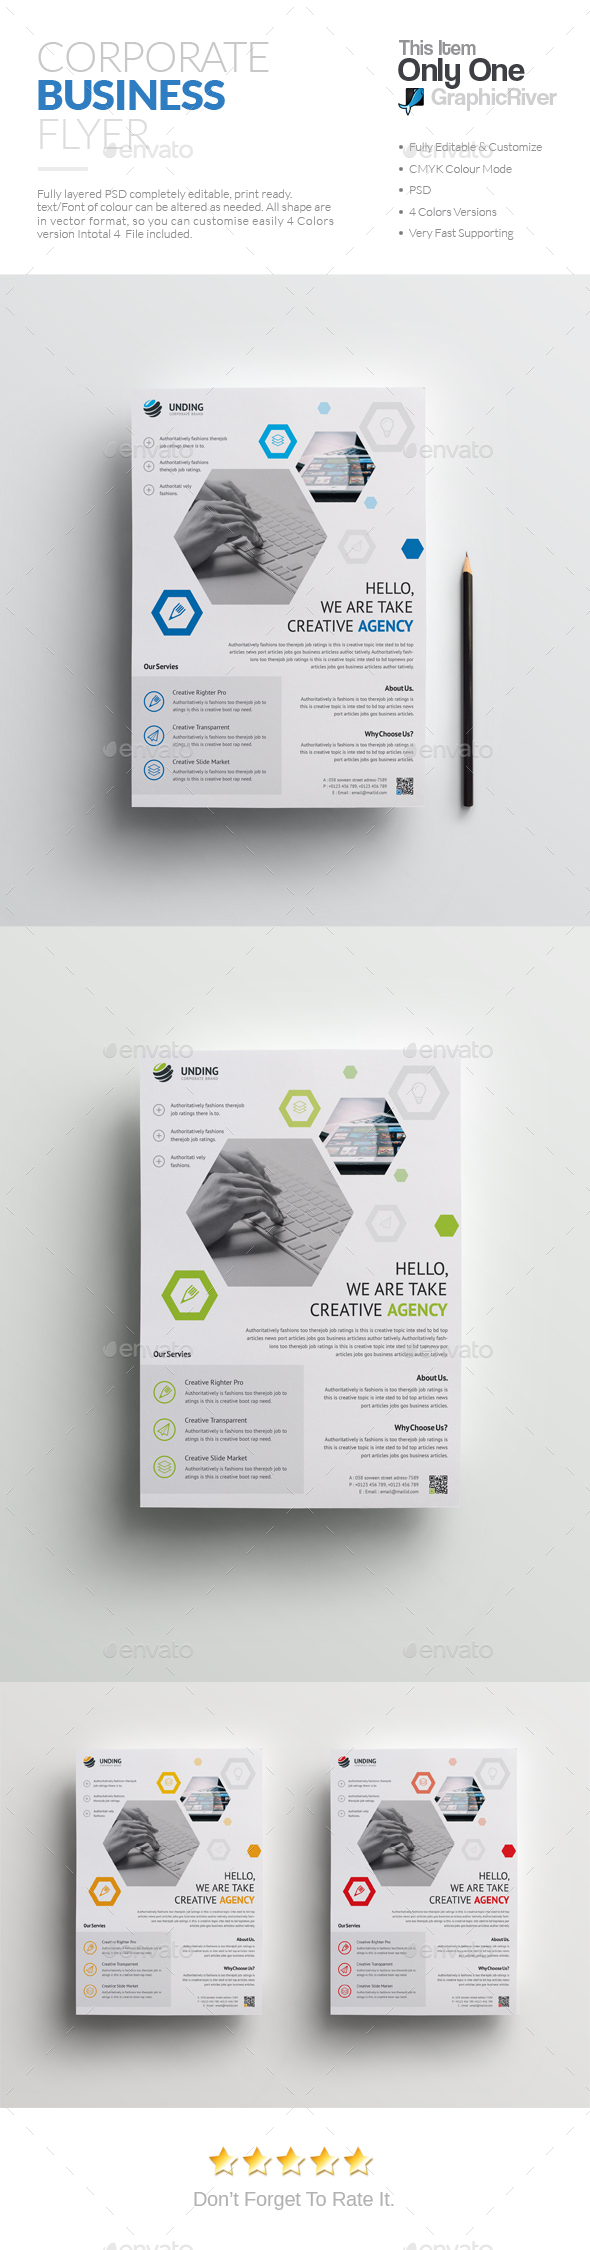 Flyer Template PSD                                                                                                                                                                                 More